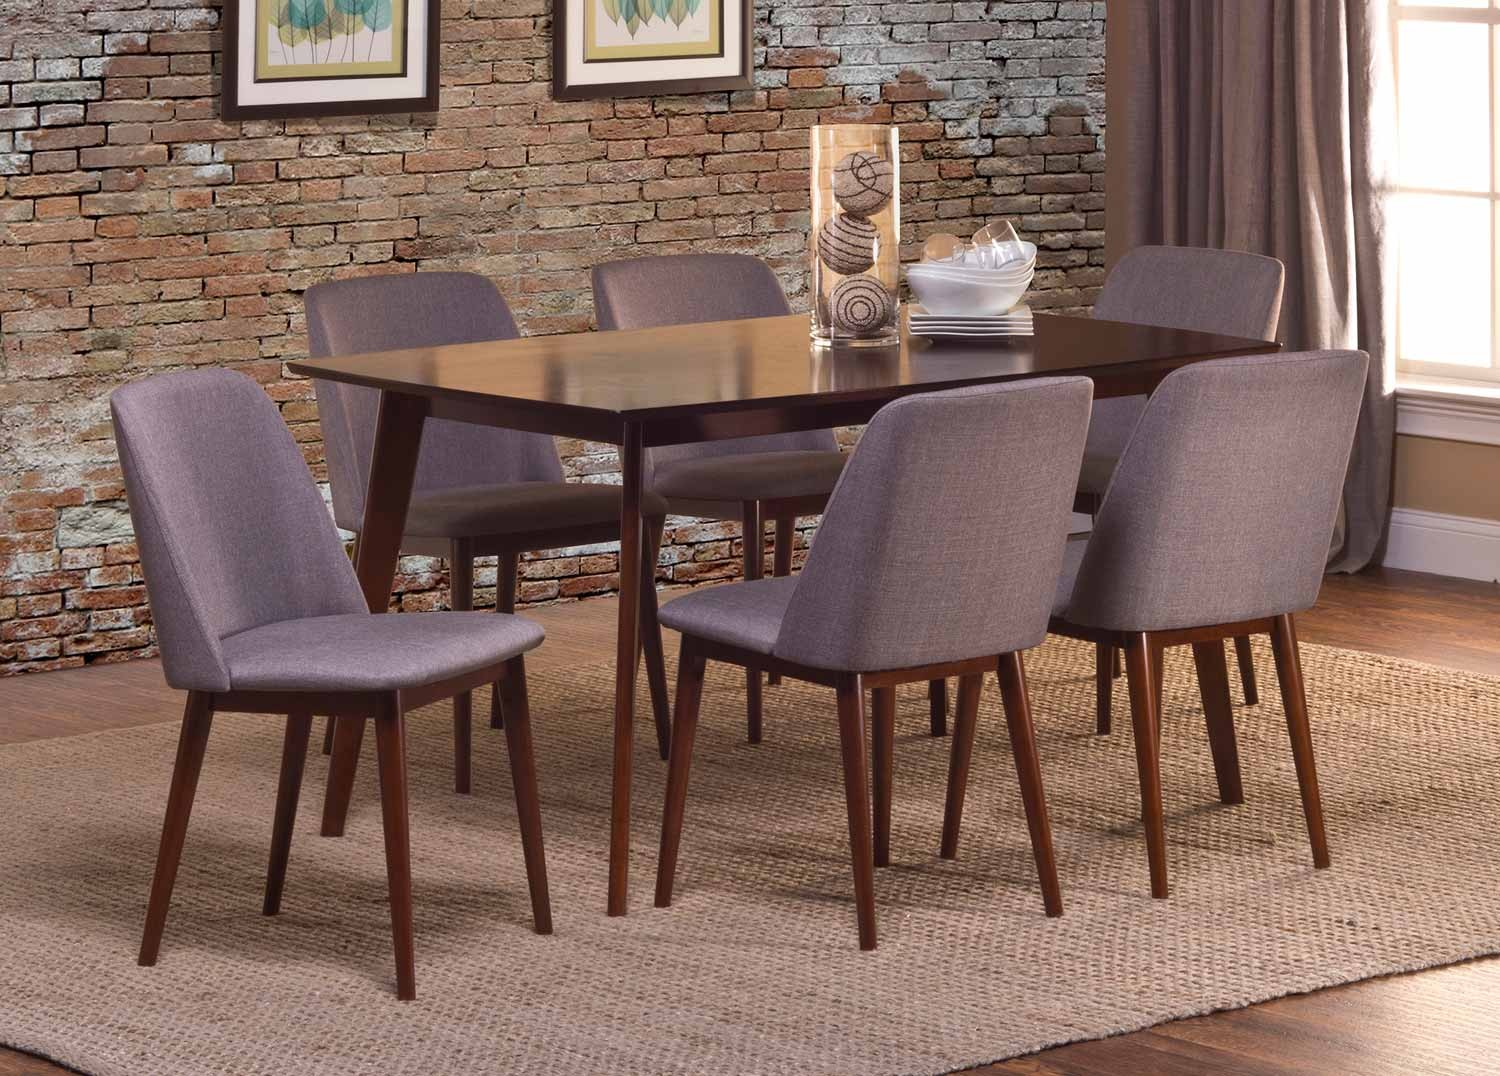 Hillsdale Allentown 7 Piece Dining Set - Cappuccino